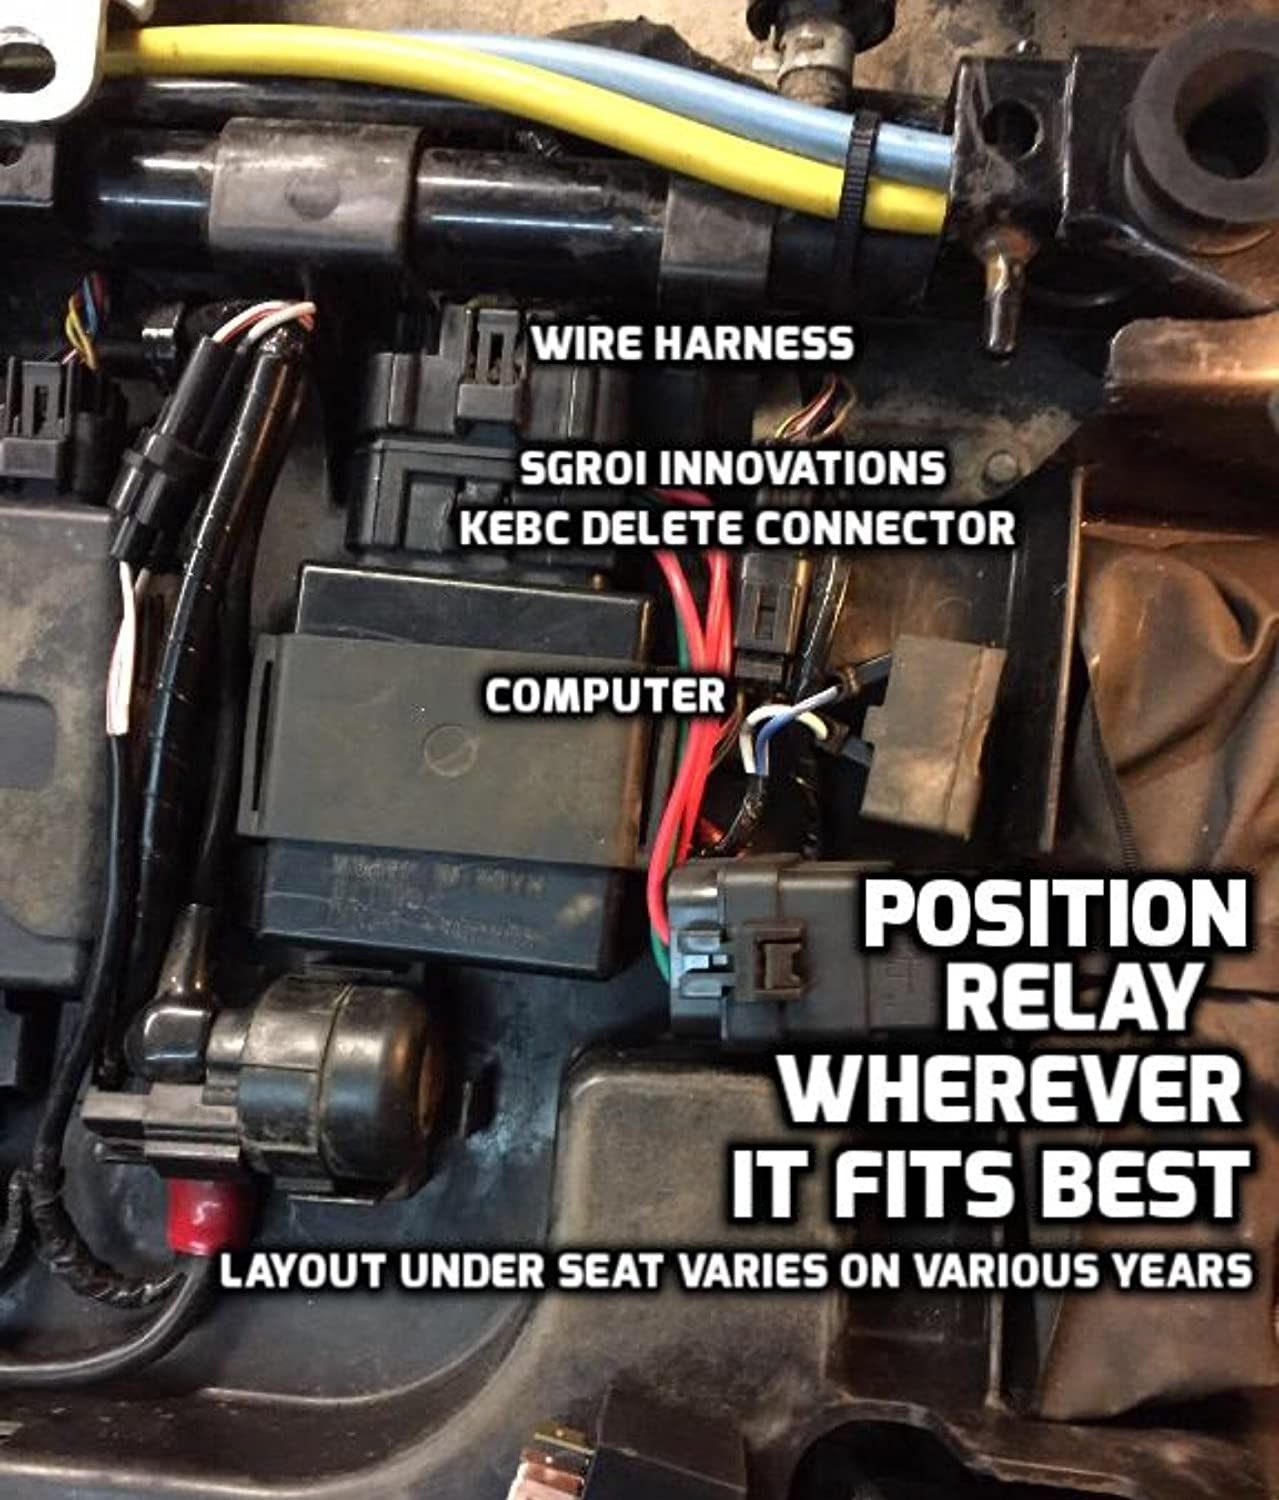 Brute Force Prairie Kebc Delete Hole Cover Combo 2005 Kawasaki 750 Wiring Diagram Automotive